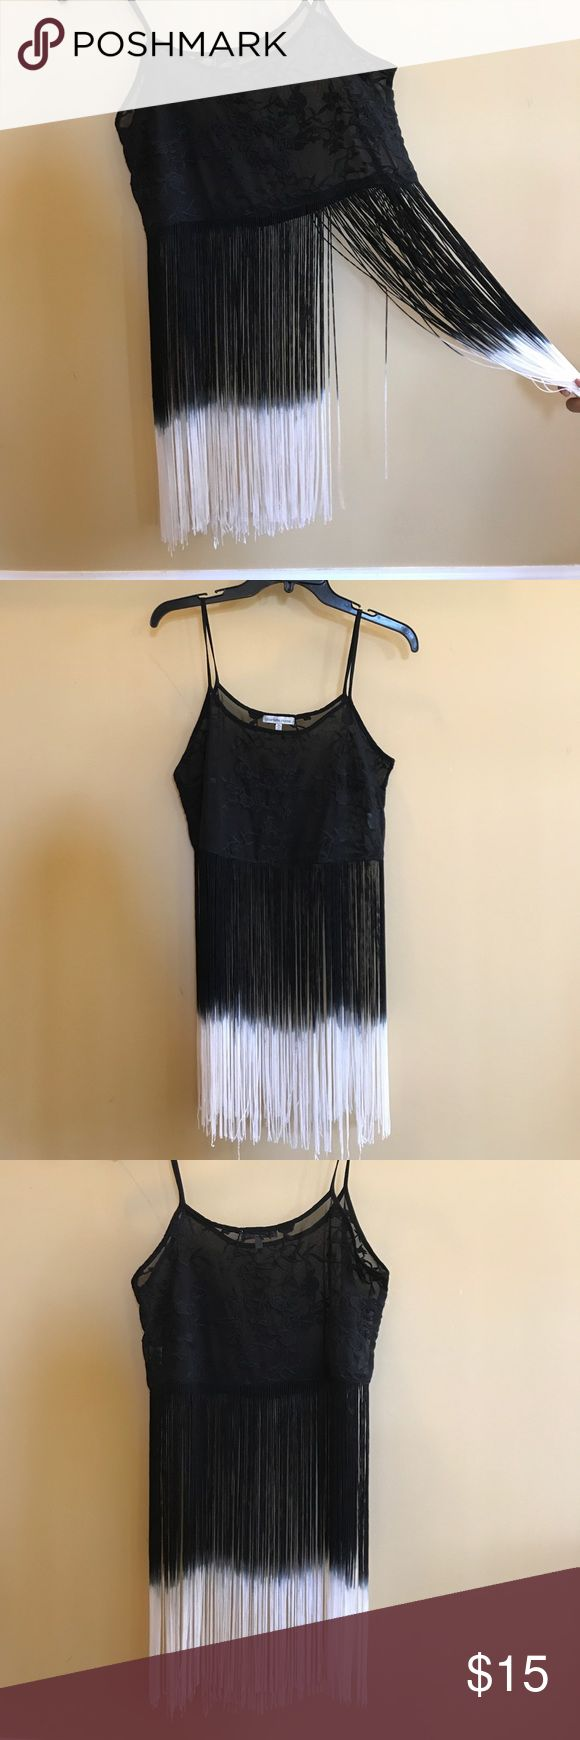 Black and white fringe spaghetti top Black spaghetti top with self embroidery transitions into a black fringe with white ends. Top is see through and best teamed with a cute bra or bralette. Never worn!! Charlotte Russe Tops